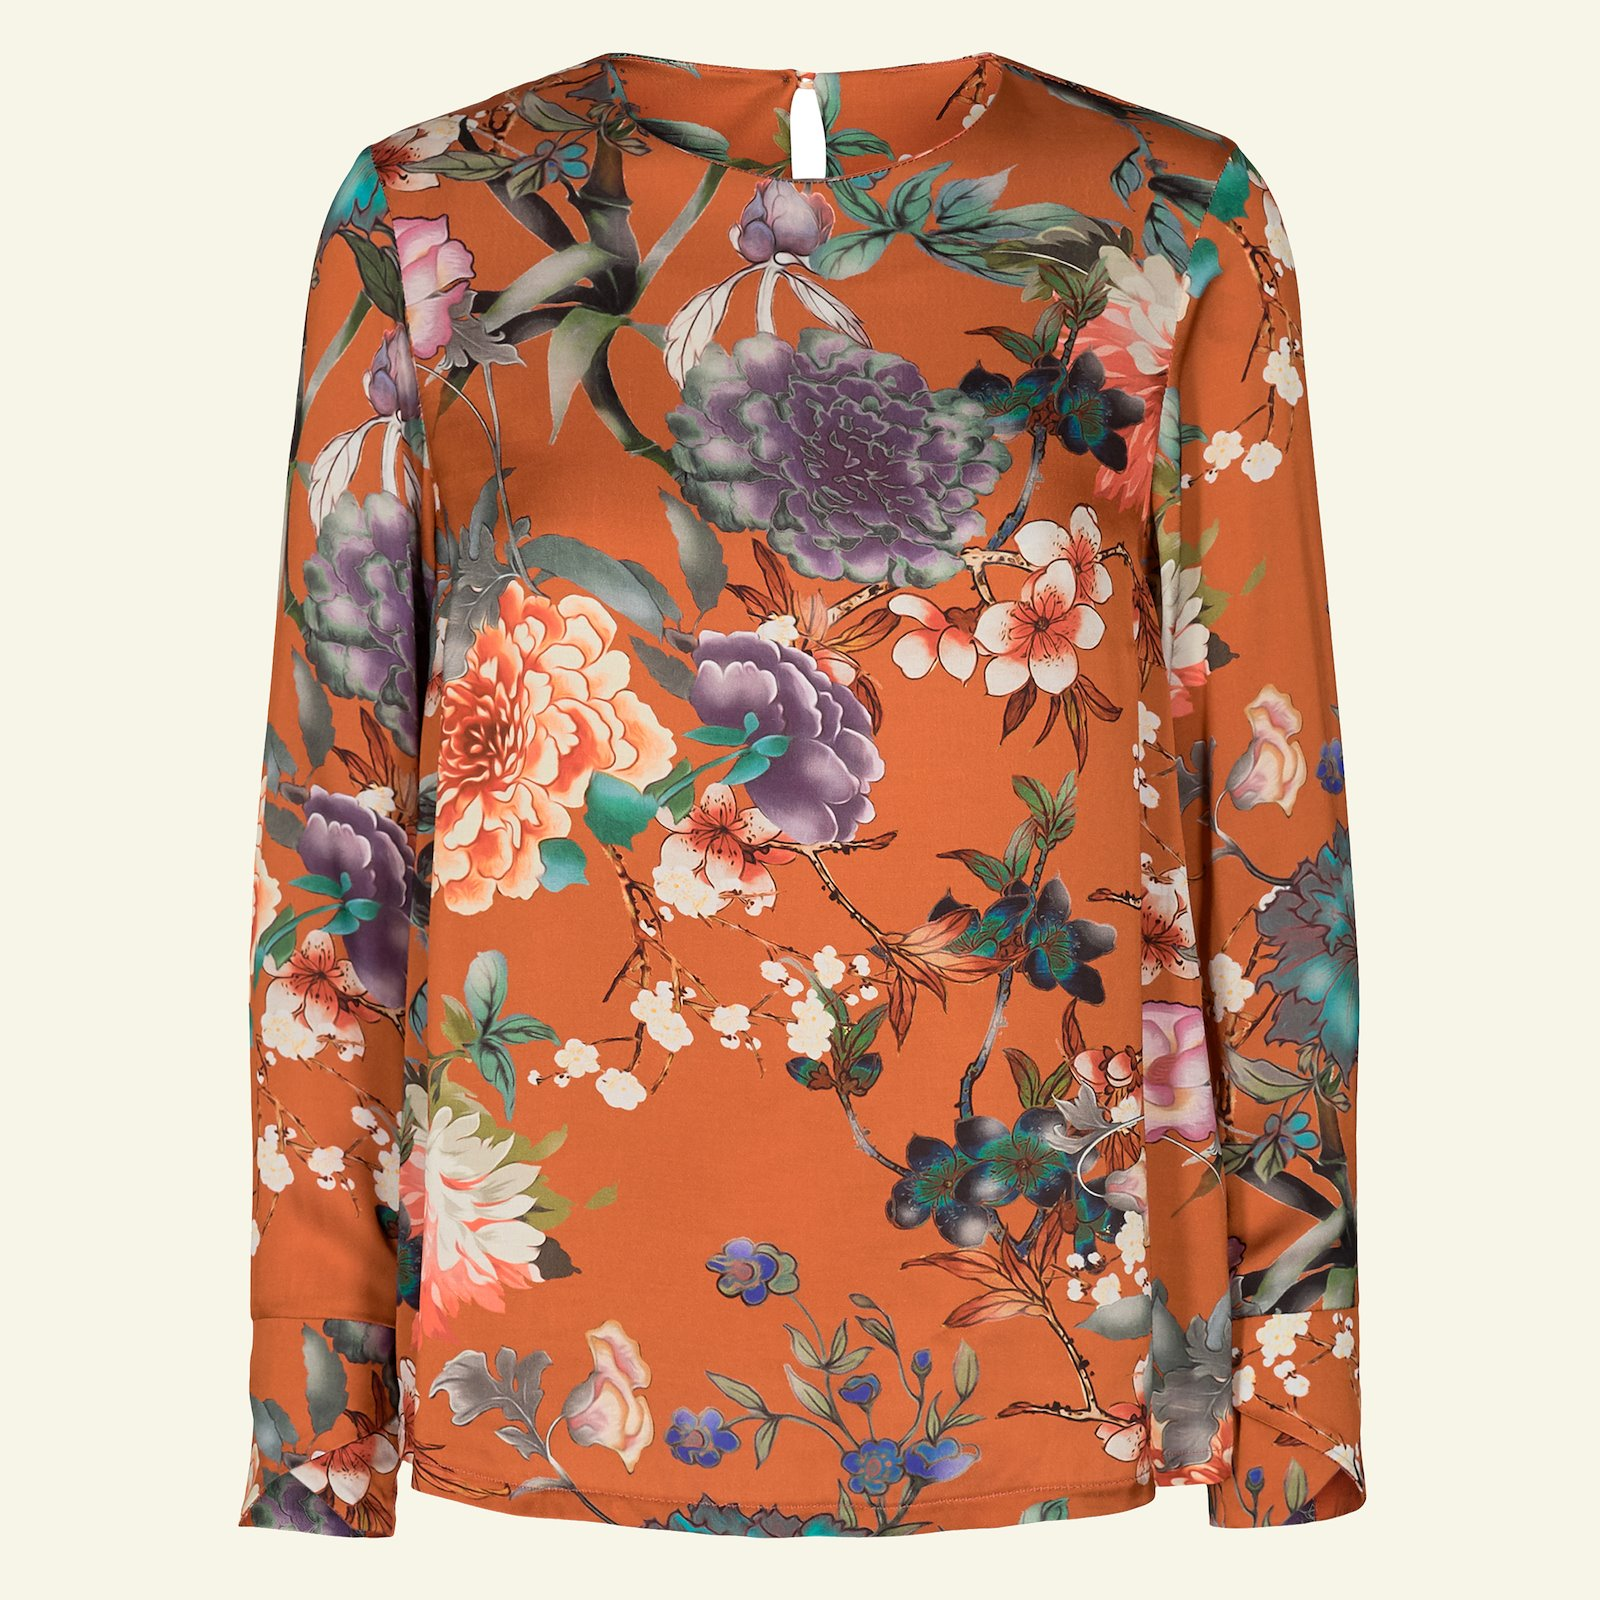 Blouse with sleeve variations, 46/18 p22067_710583_sskit